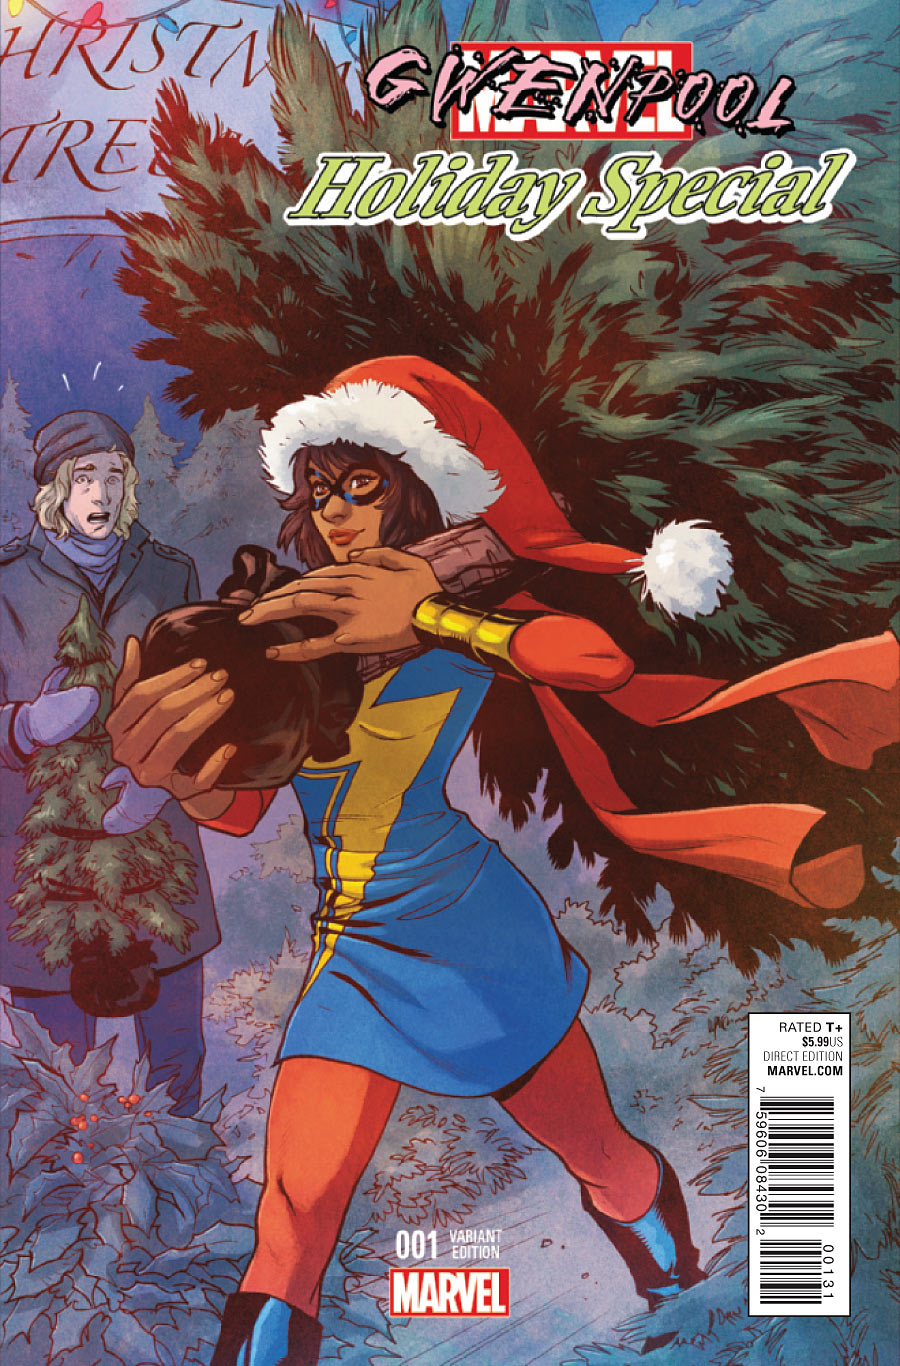 Gwenpool: Holiday Special 0001c Ms Marvel Variant